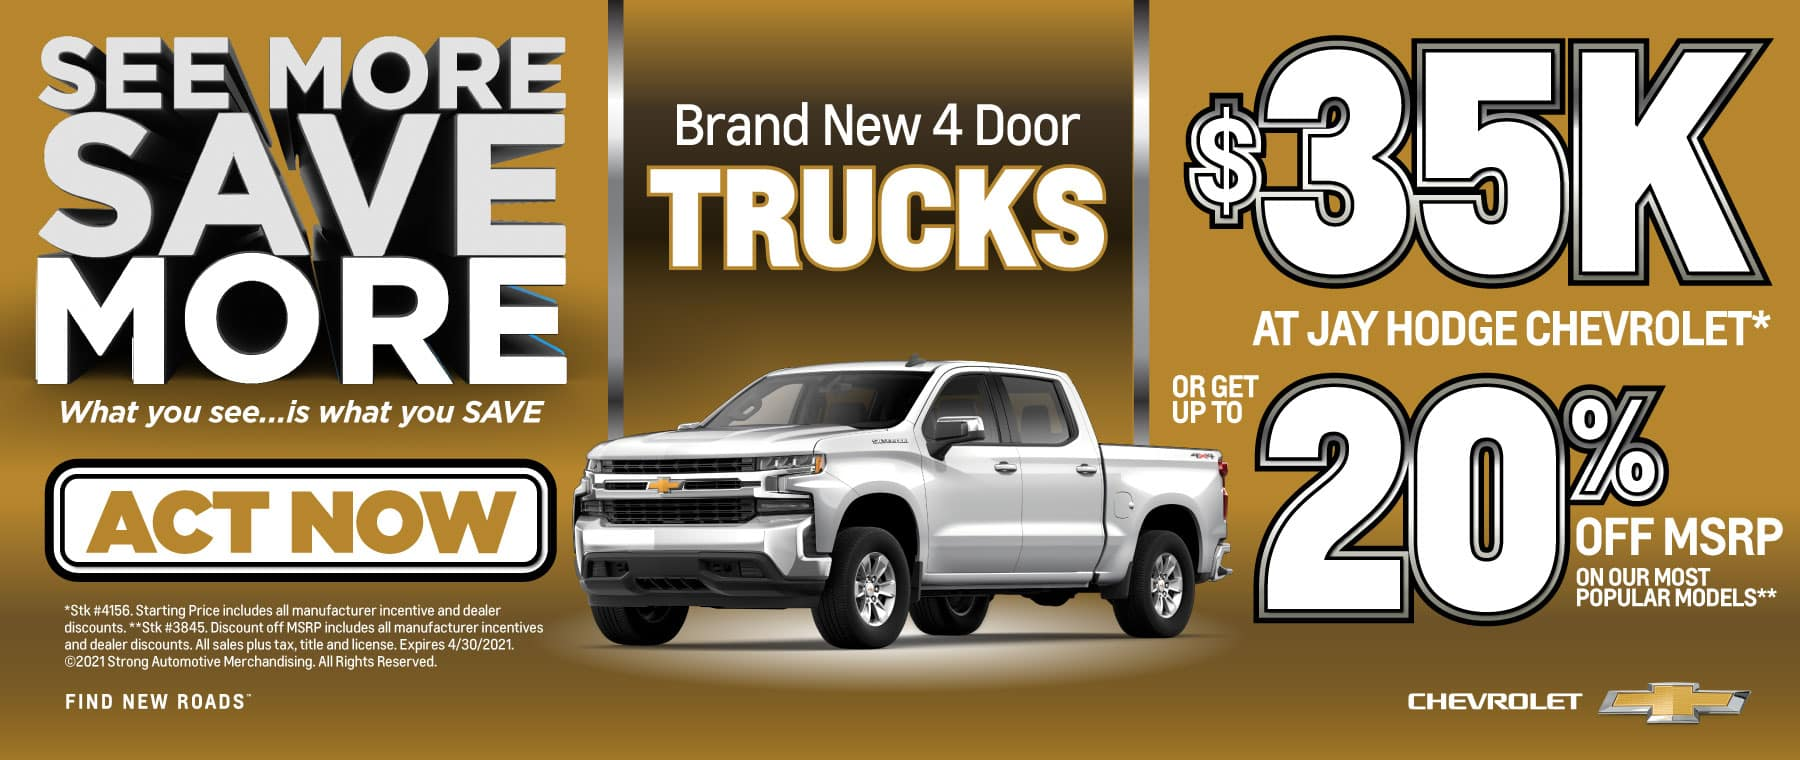 Brand New 4 Door Trucks   $35K at Jay Hodge Chevy or get up to 20% off MSRP   Act Now